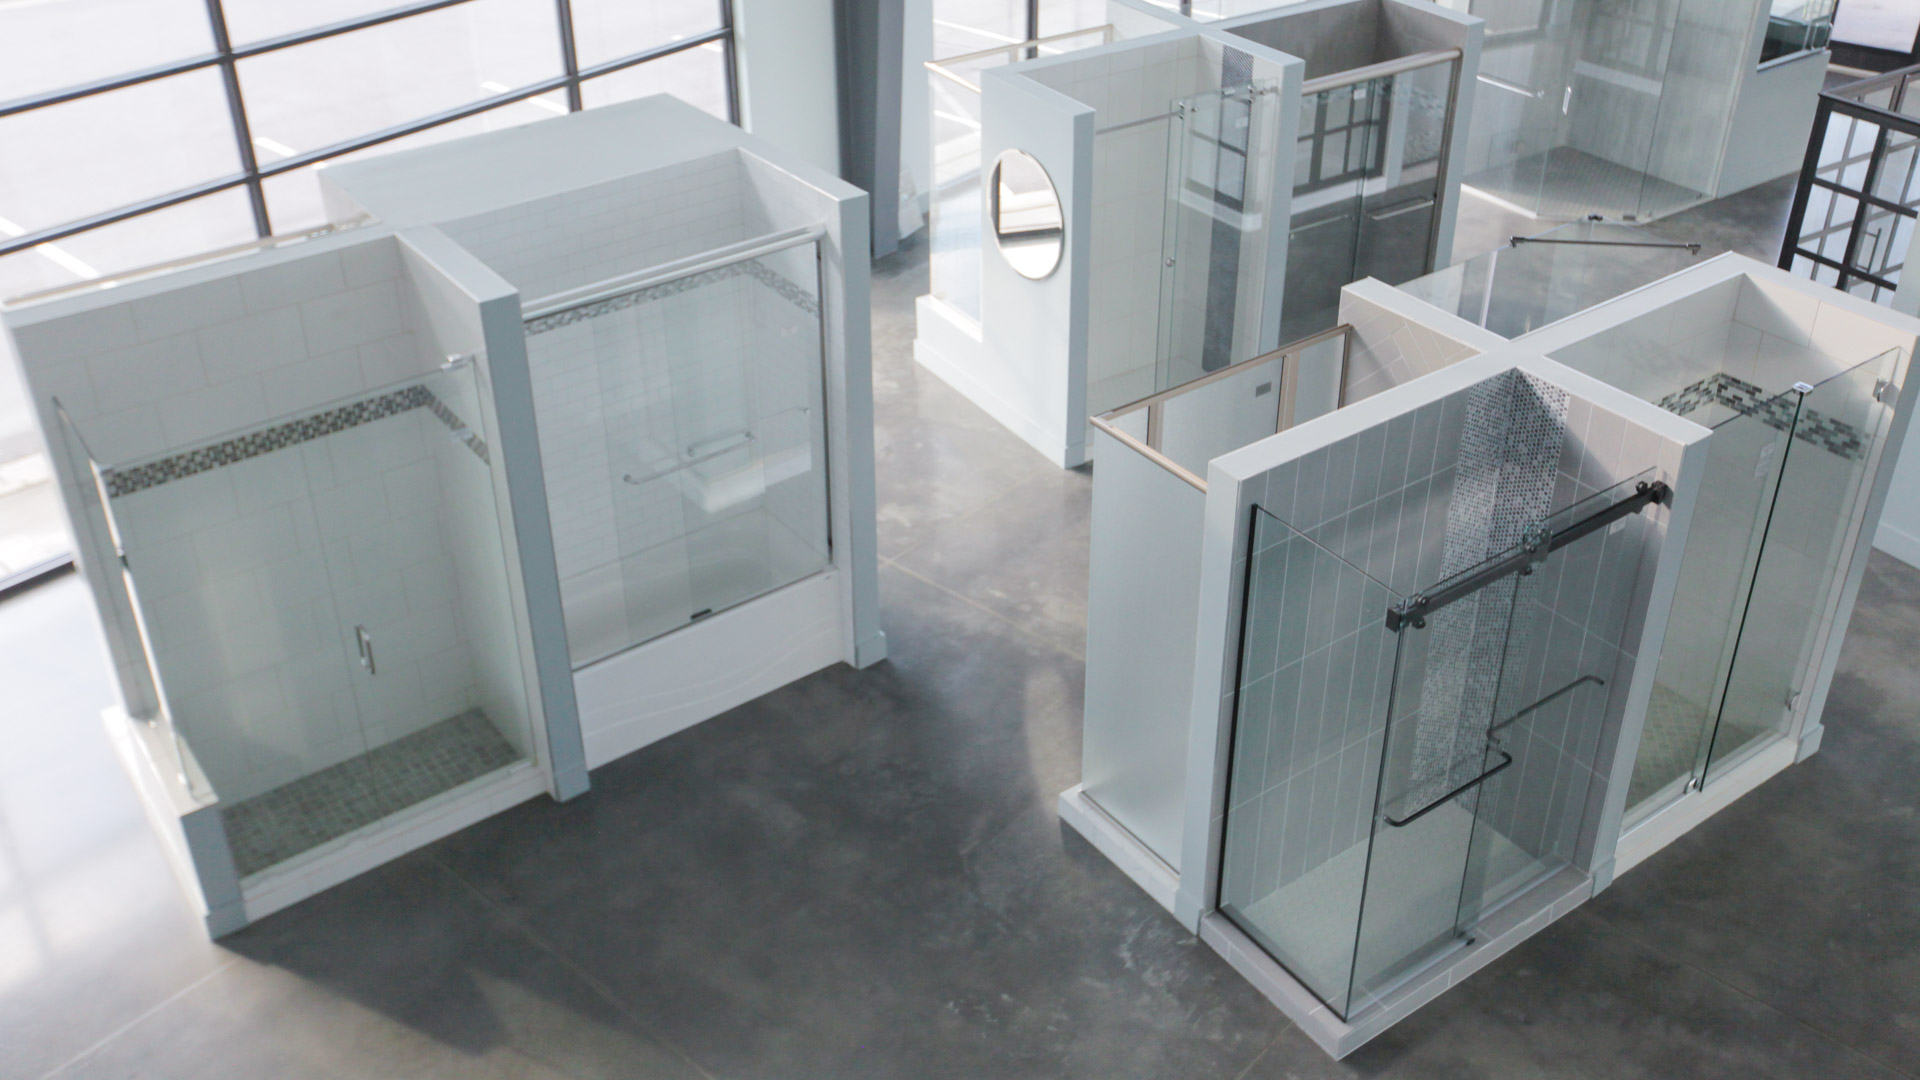 Choosing the right shower enclosure for your space